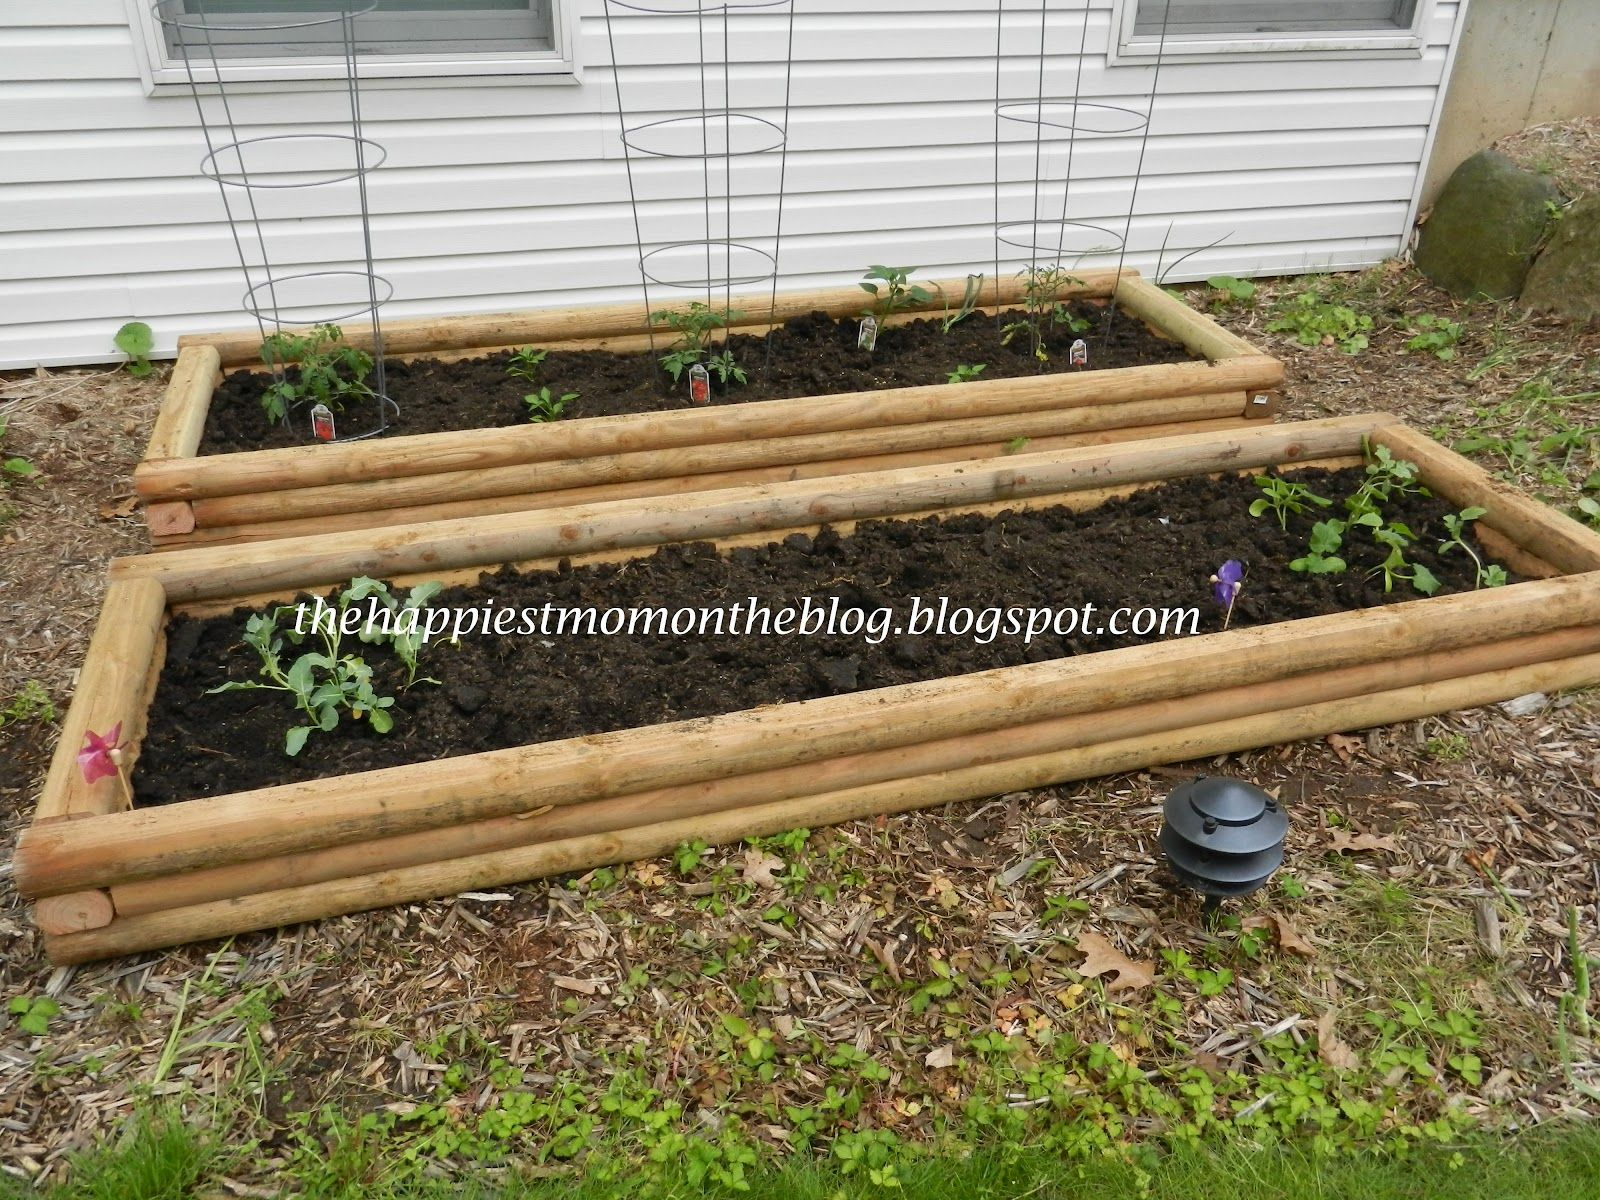 Innovative We Went To Homedepot To Buy Landscape Diy Raised Garden Se Planters Are Easy To Make Out Home Depot Vegetable Garden Box Just A Couple We Built Se Garden Boxes garden Home Depot Vegetable Garden Box